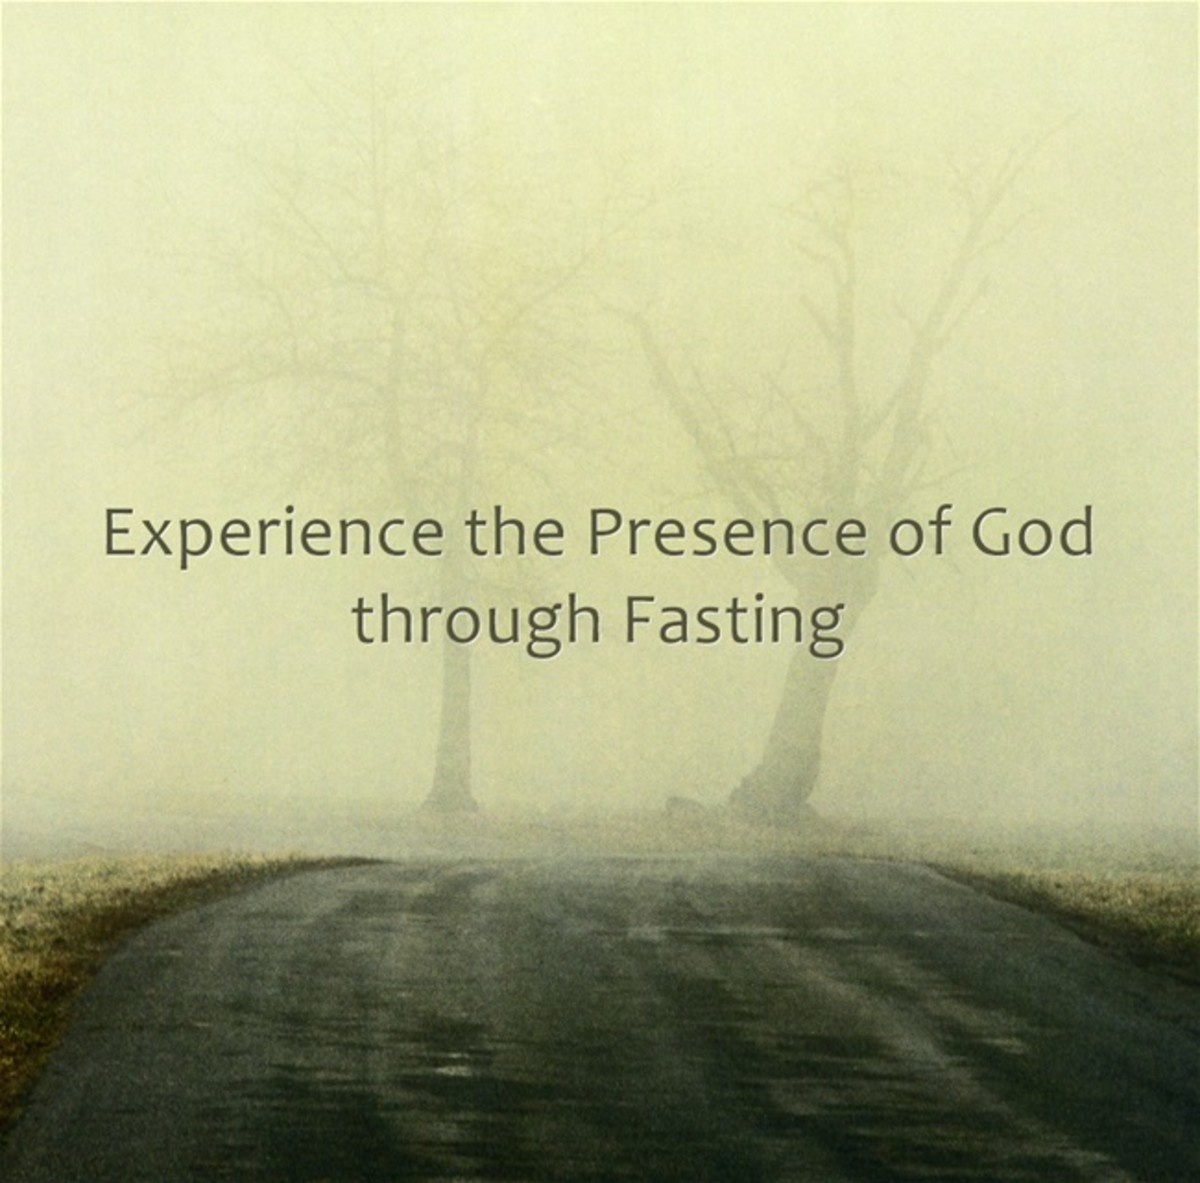 ways-to-experience-the-presence-of-god